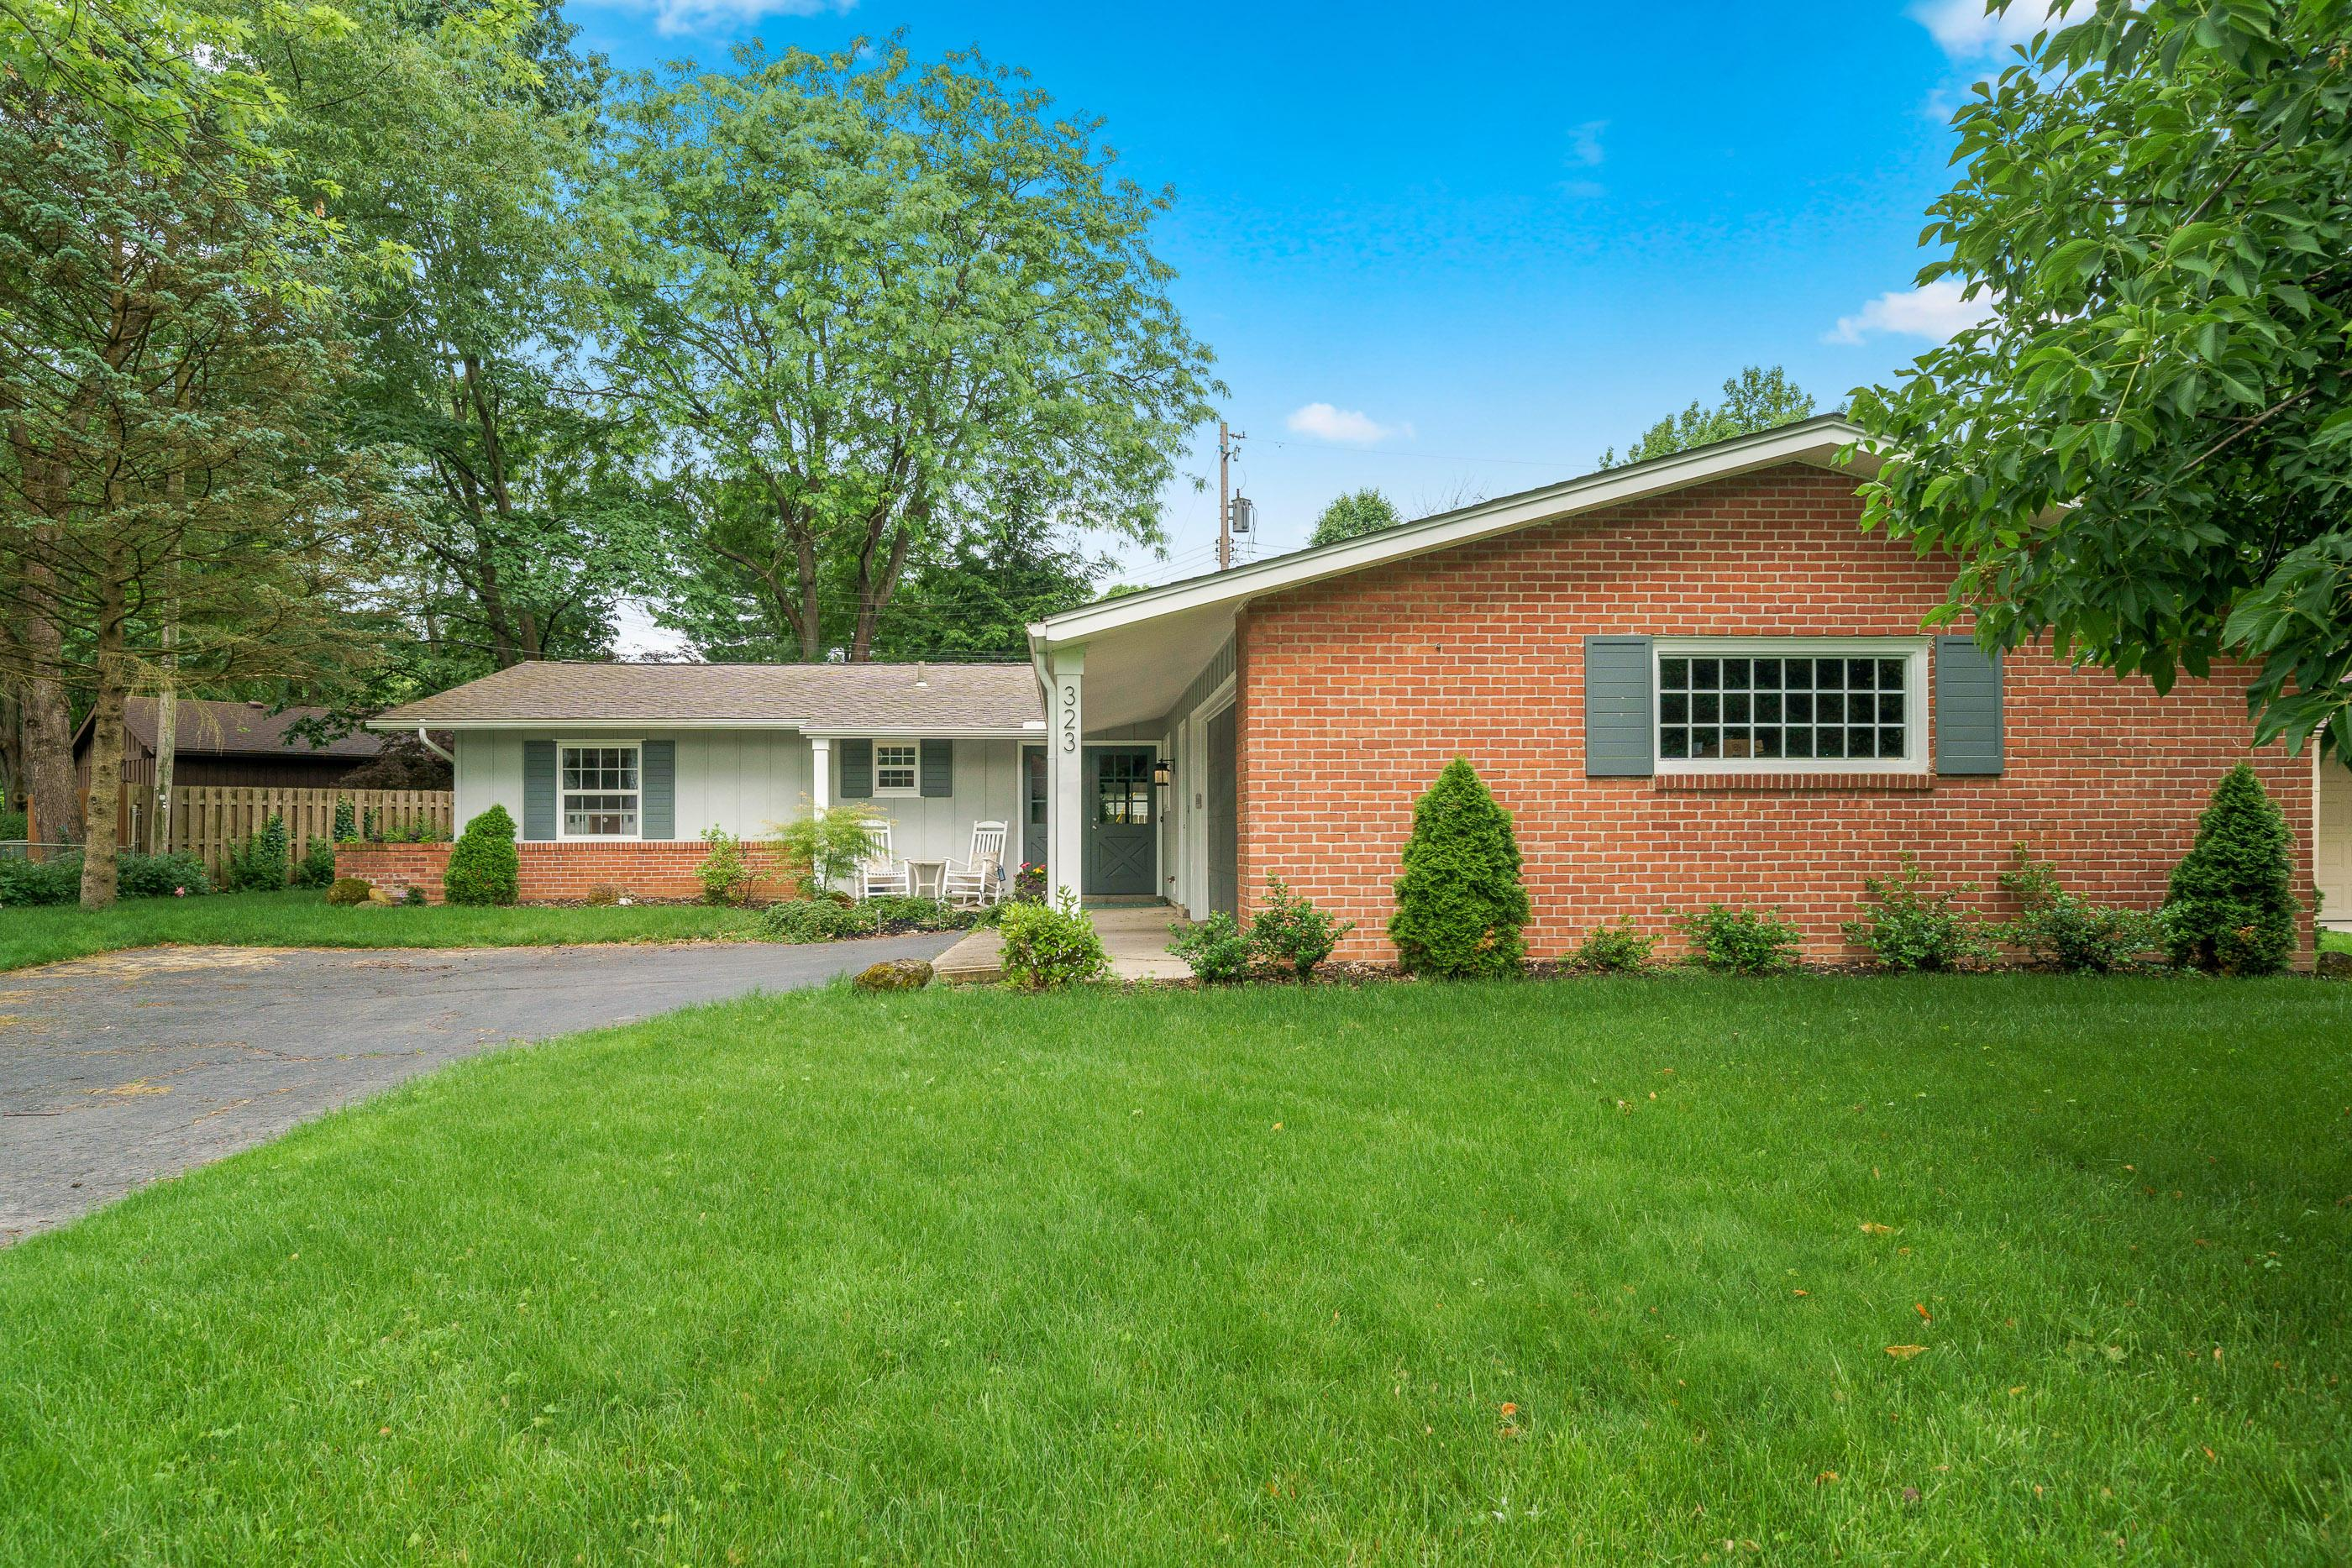 Photo of 323 Rivers End Road, Gahanna, OH 43230